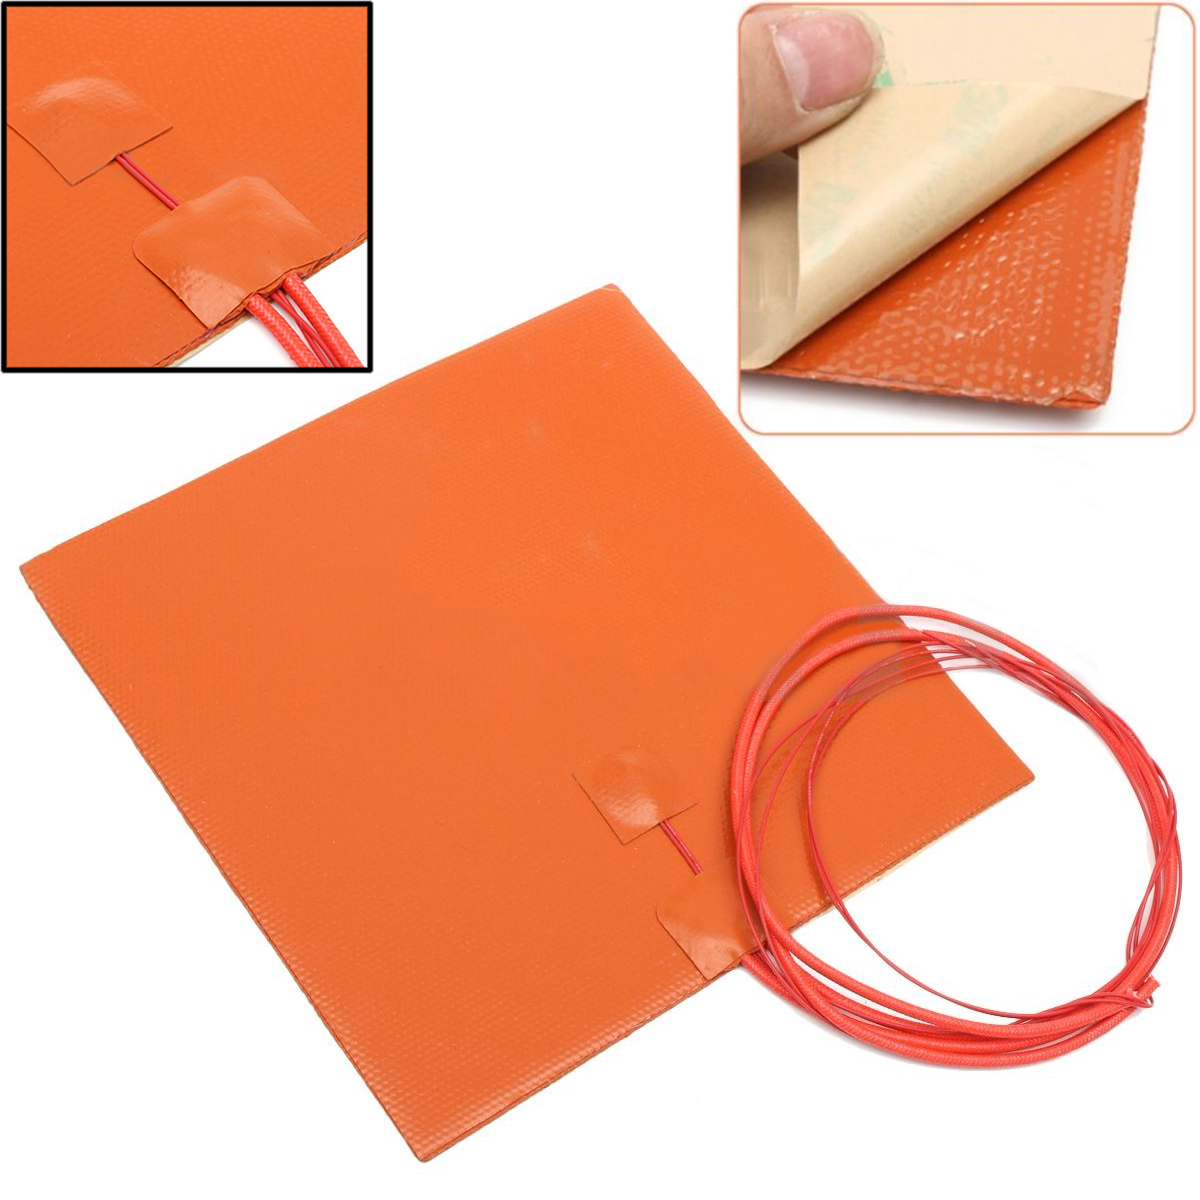 Silicone Heating Pad 200W 12V 200*200mm Mayitr Thermal Conversion Repair Tools For 3D Laser Printer Heated Bed Heating Mat 200